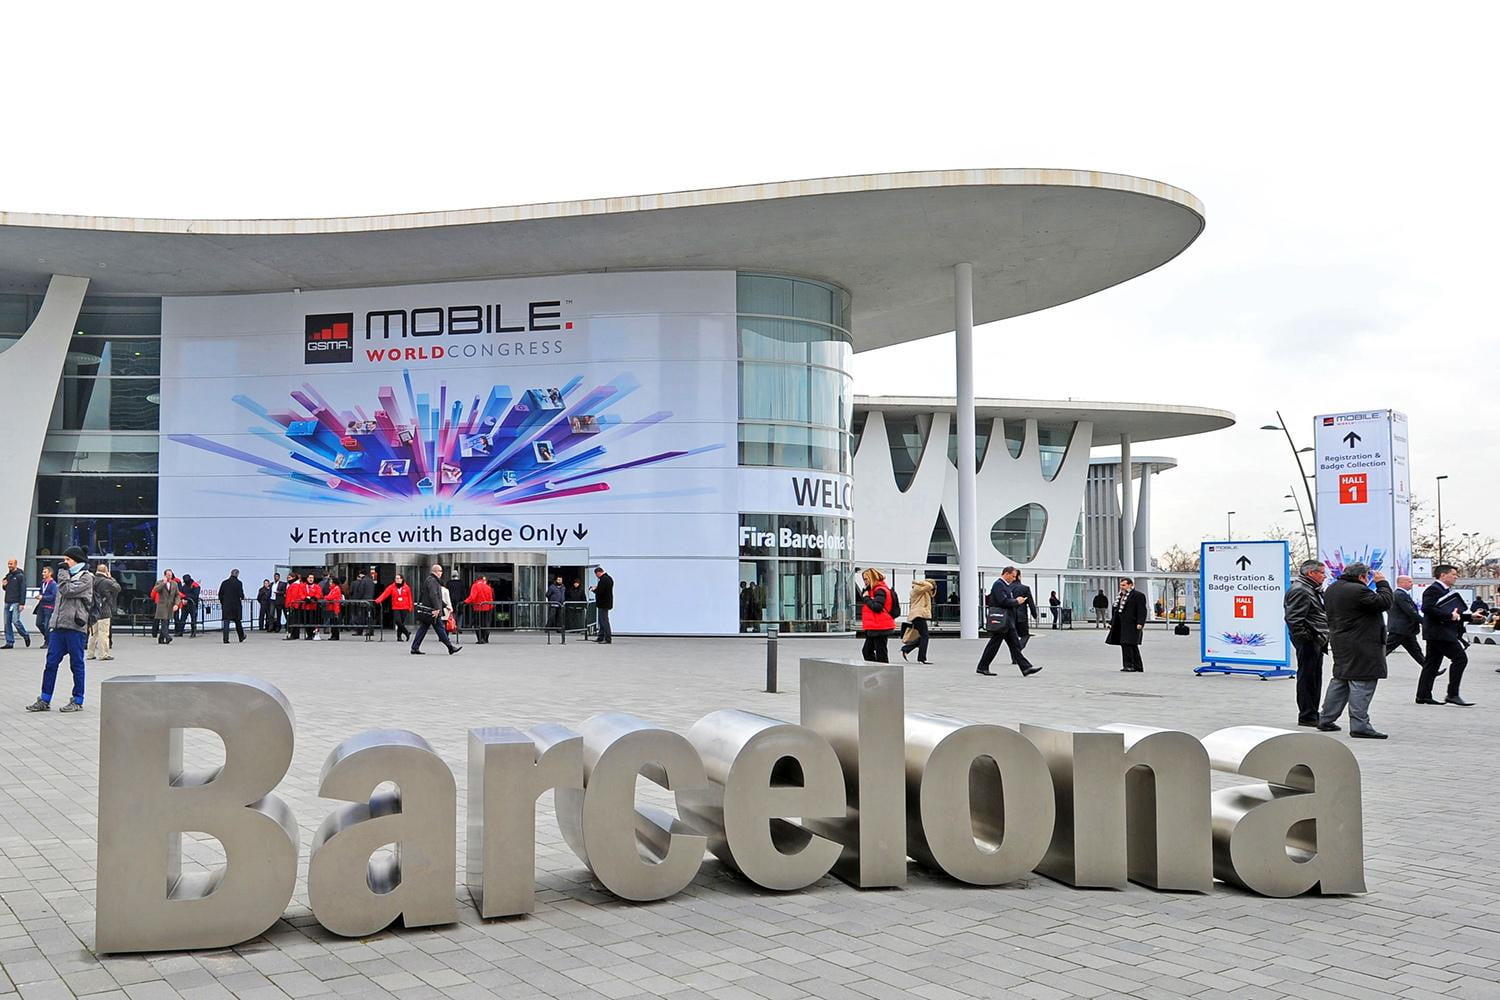 Mobile World Congress 2019: What Should You Expect?